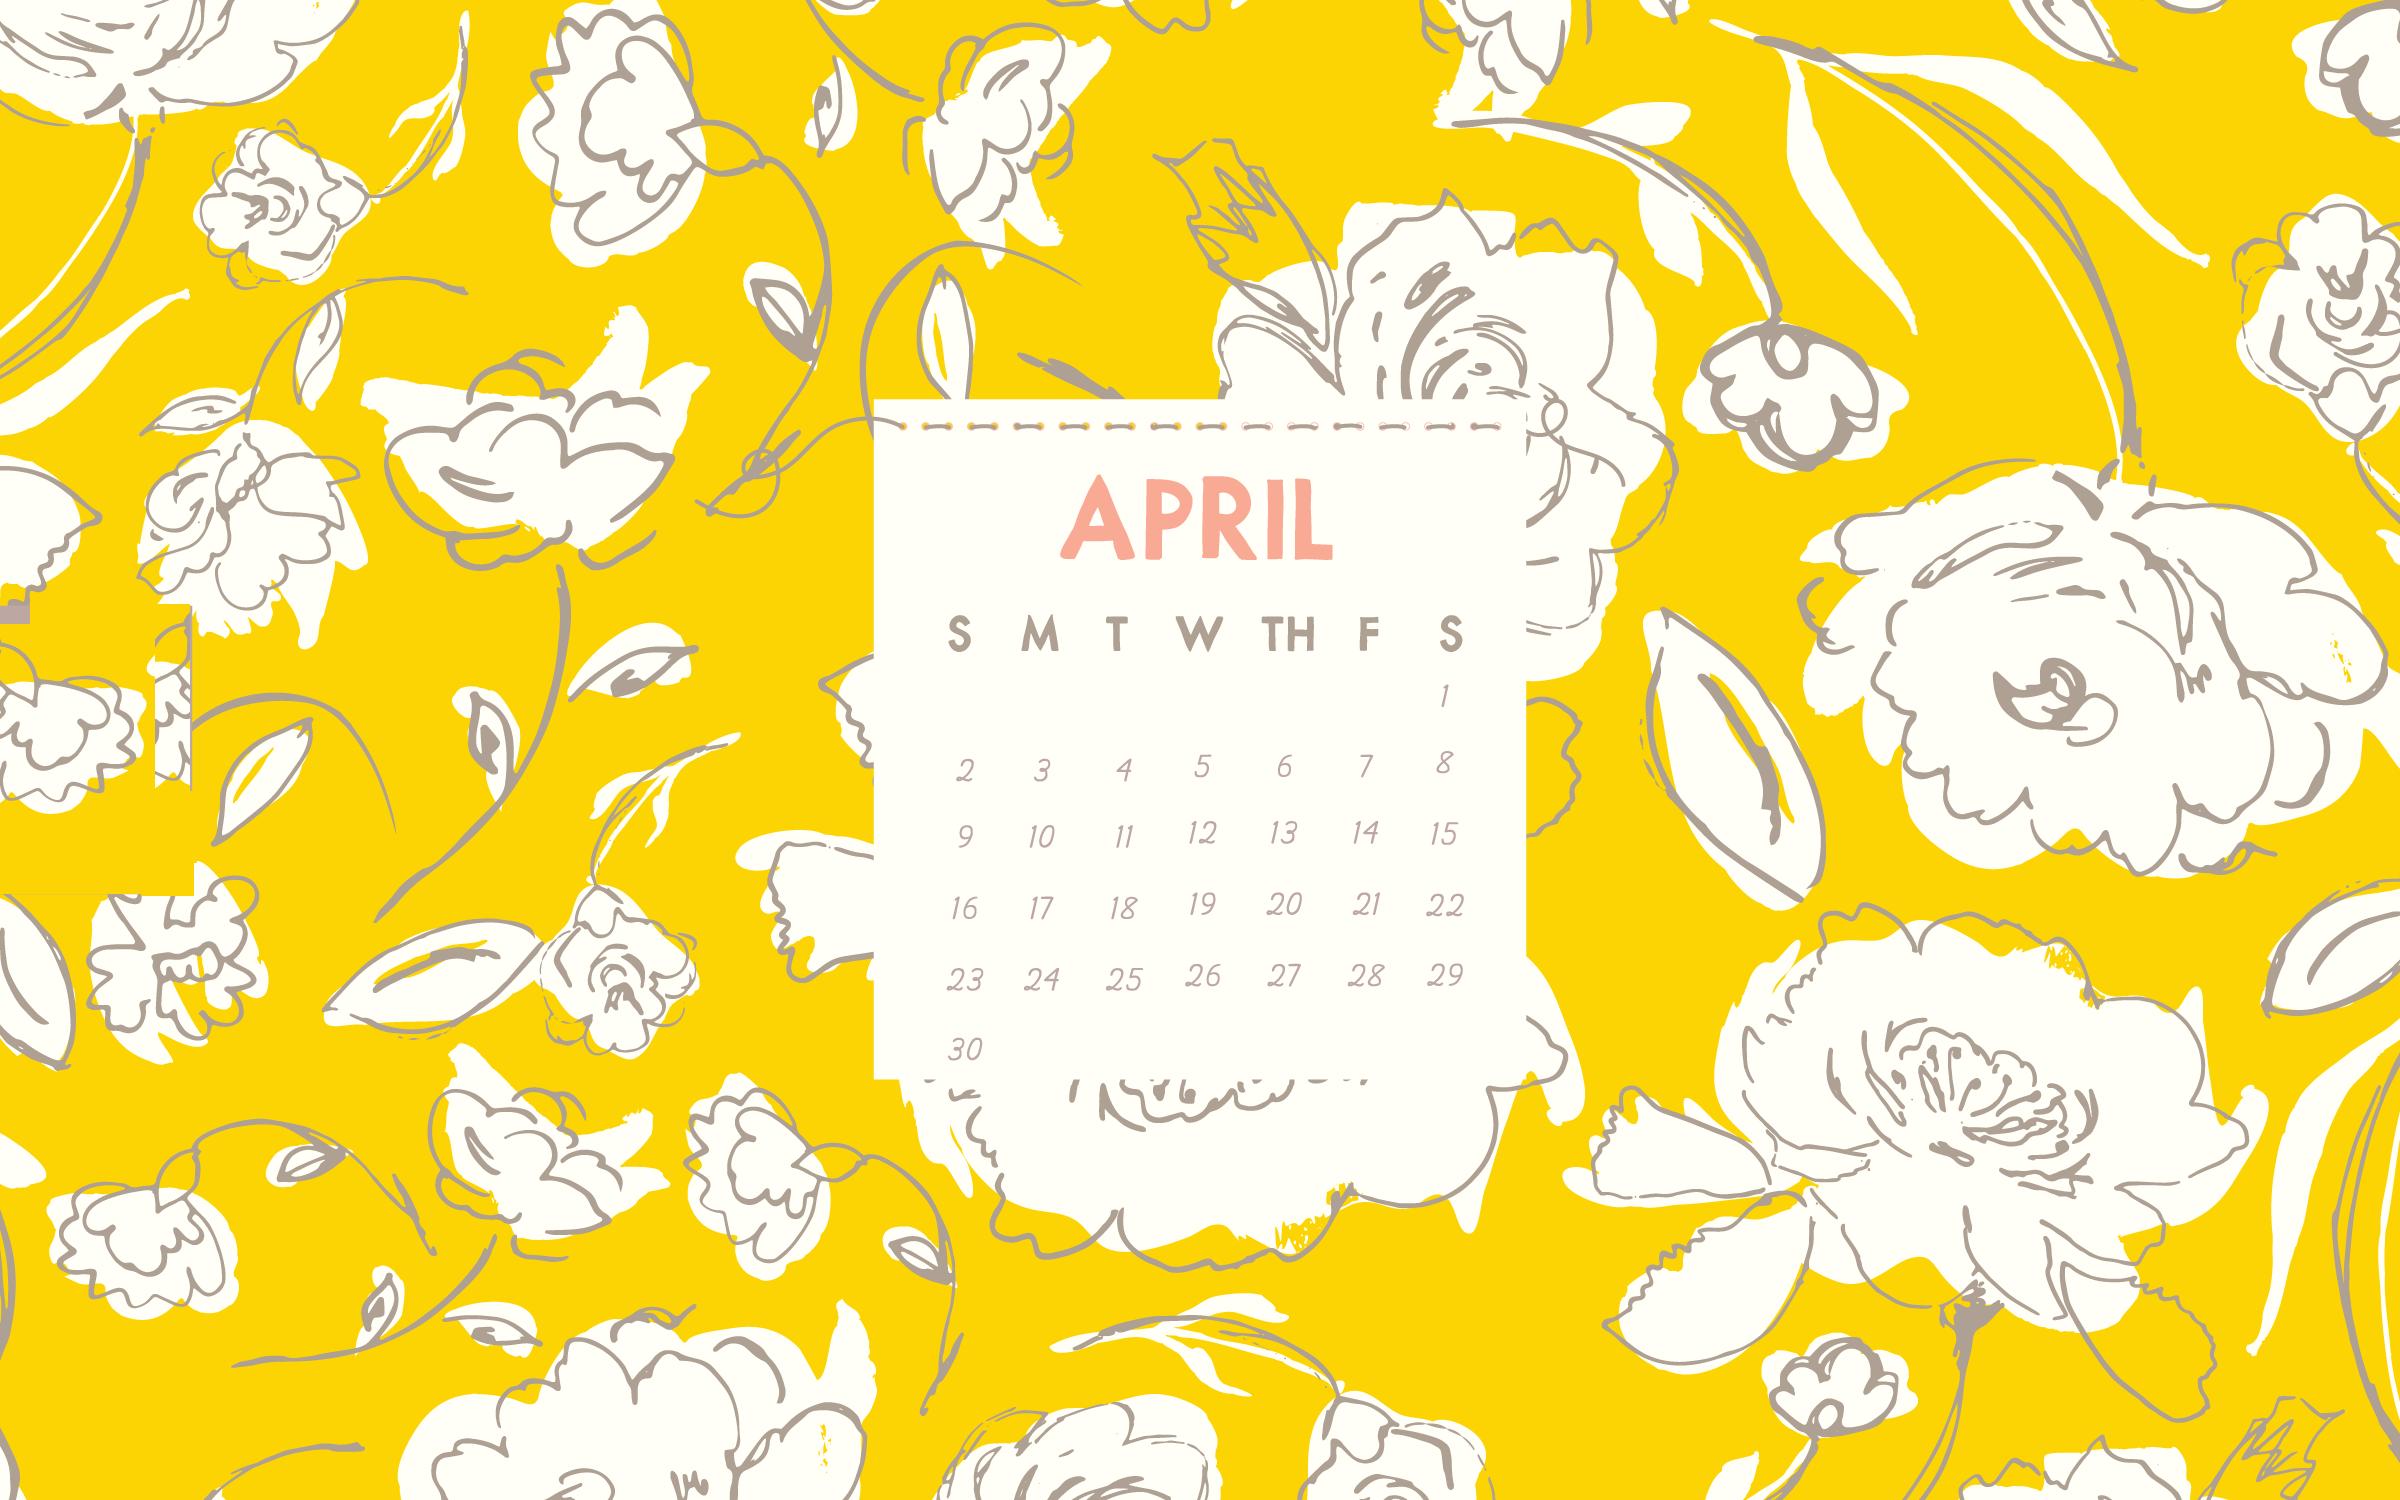 April 2018 Desktop Calendar Wallpaper Calendar Wallpaper